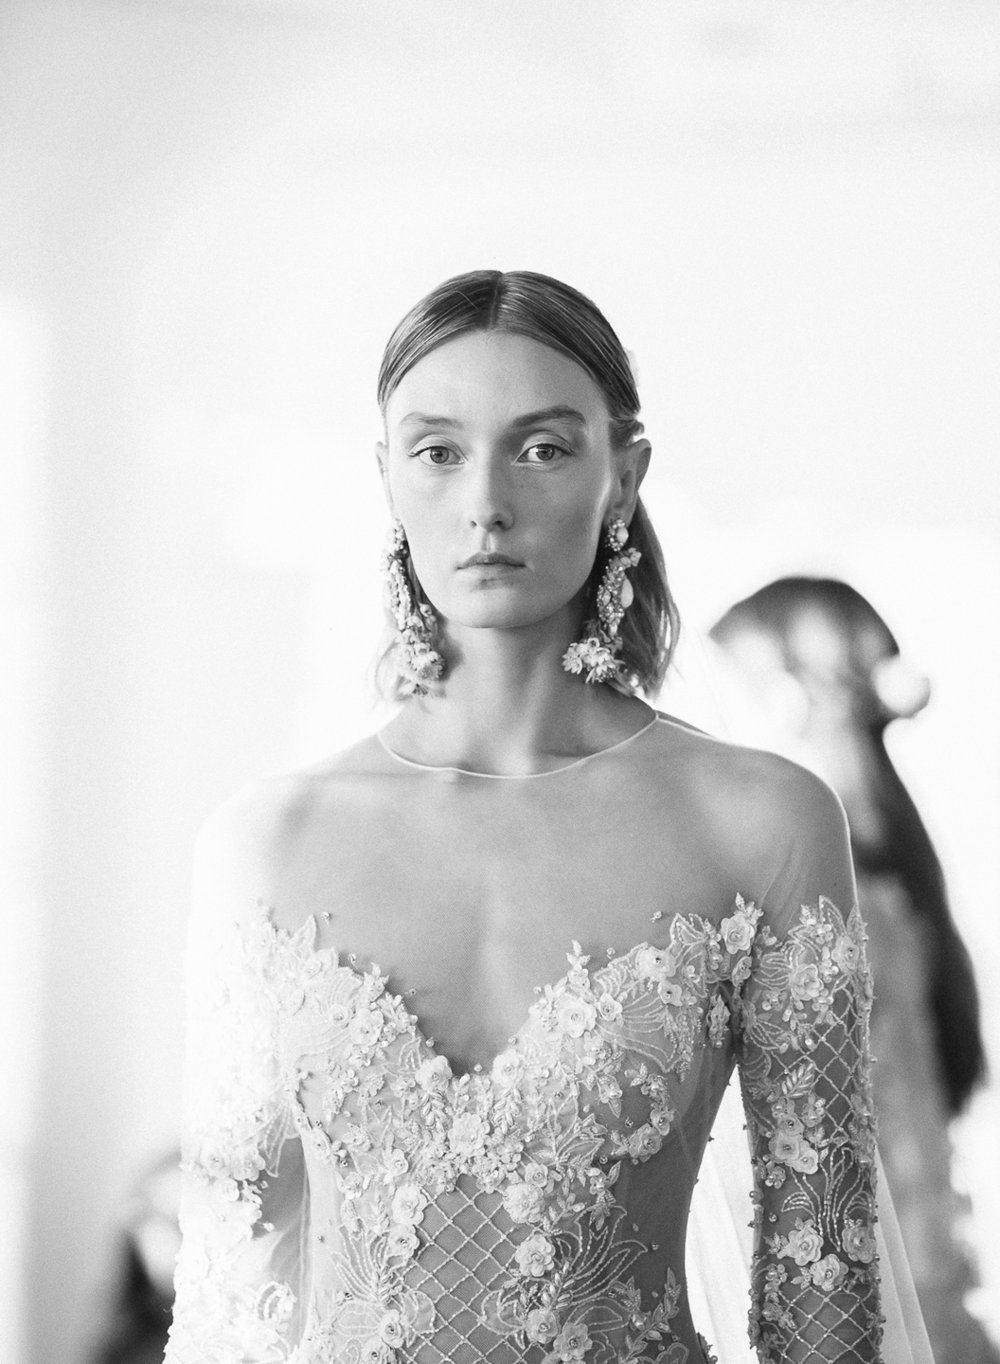 marchesa_bridal_017_greg_finck-030_50556.jpg